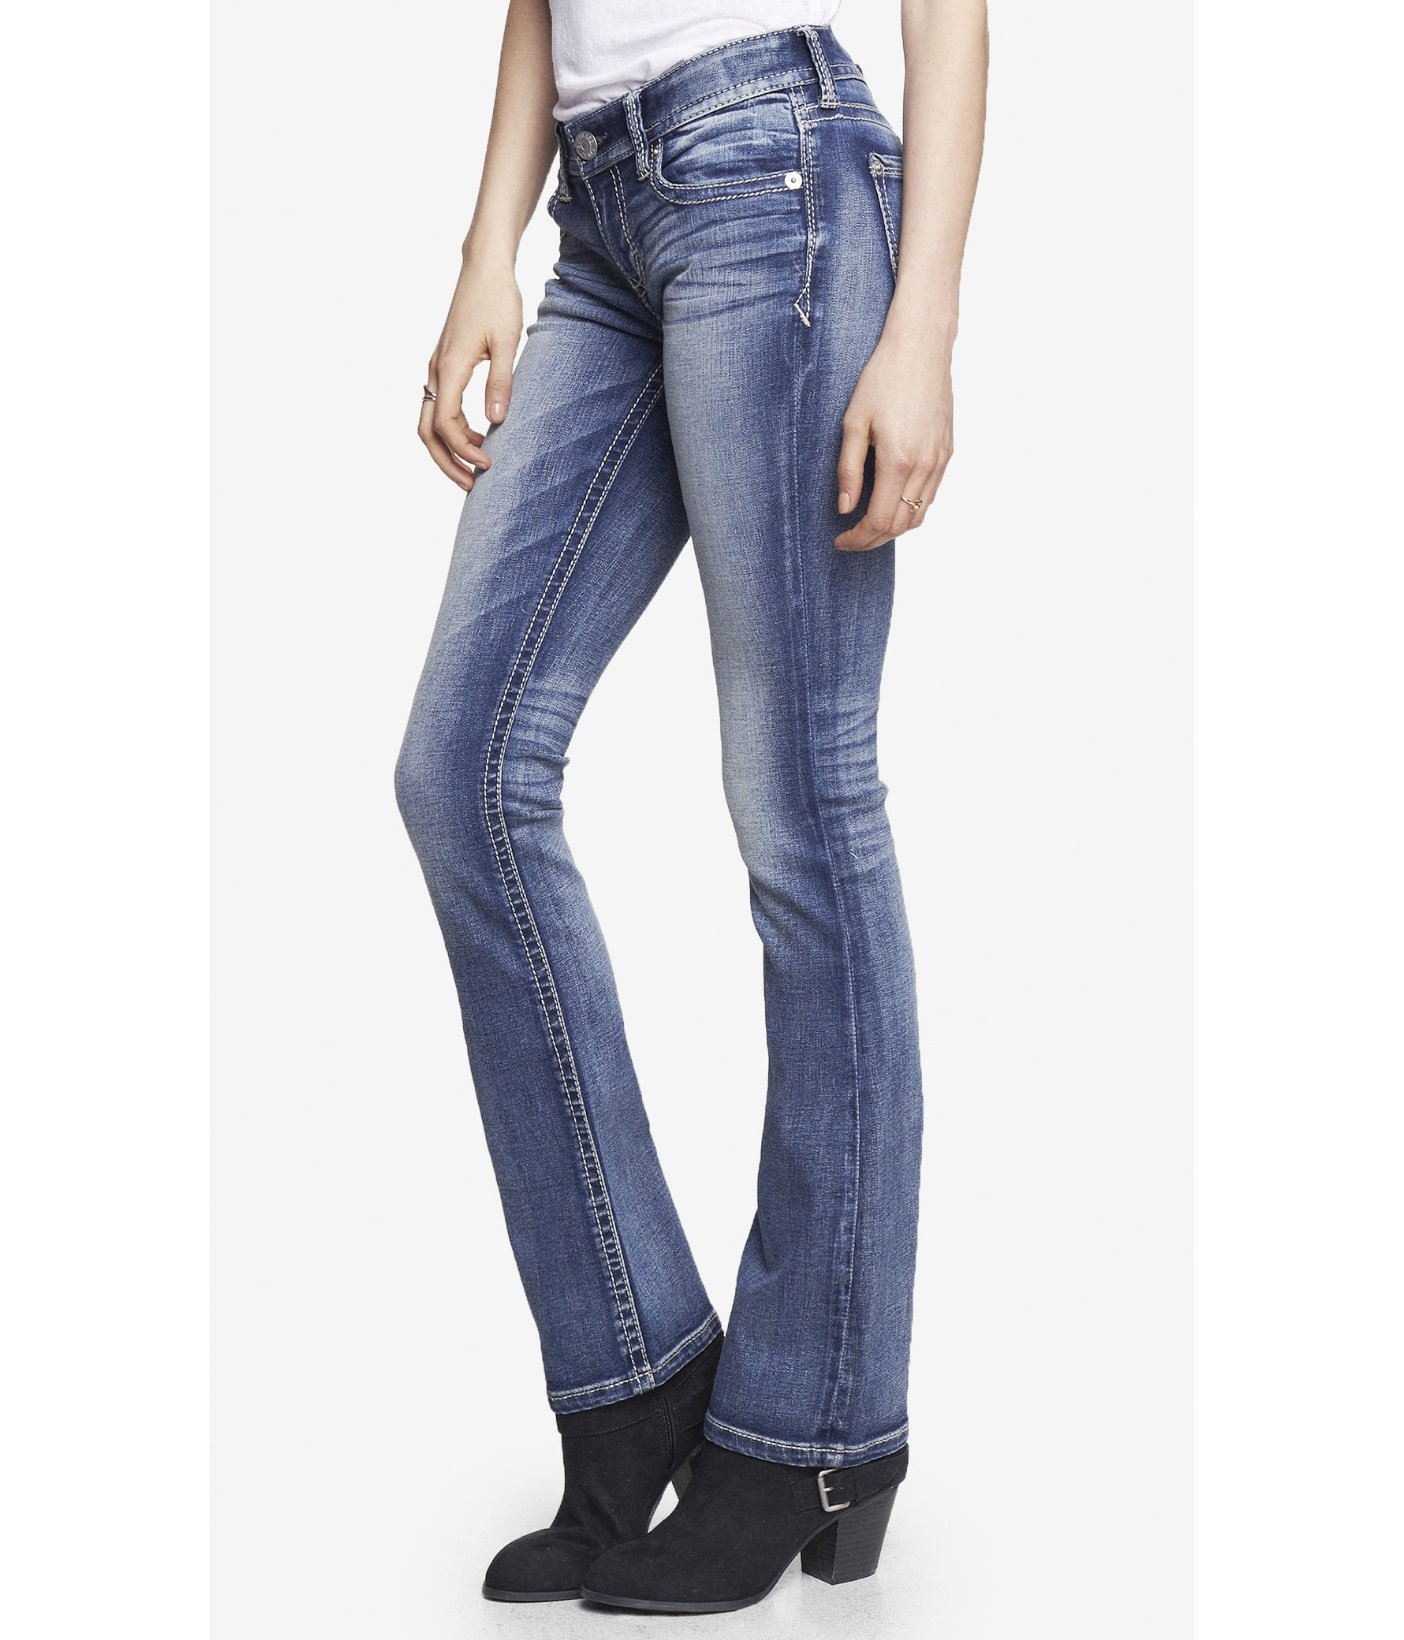 0ed96d5679d Express Medium Wash Low Rise Thick Stitch Barely Boot Jean in Blue ...